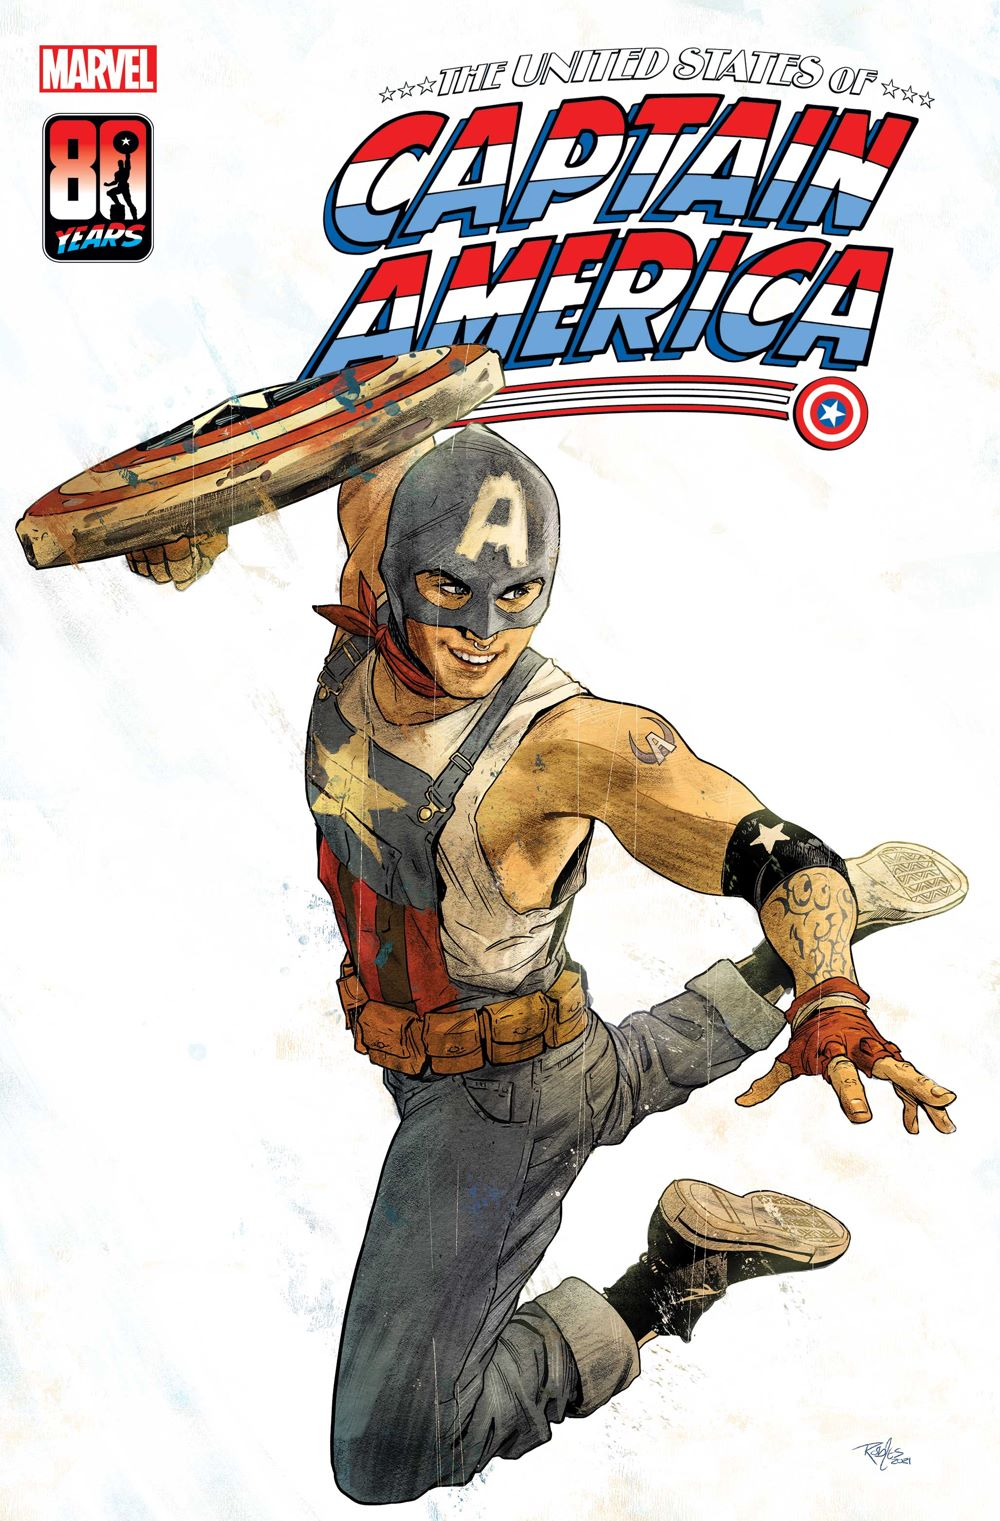 USCAPA2021001_RoblesVar Discover new heroes in THE UNITED STATES OF CAPTAIN AMERICA #1